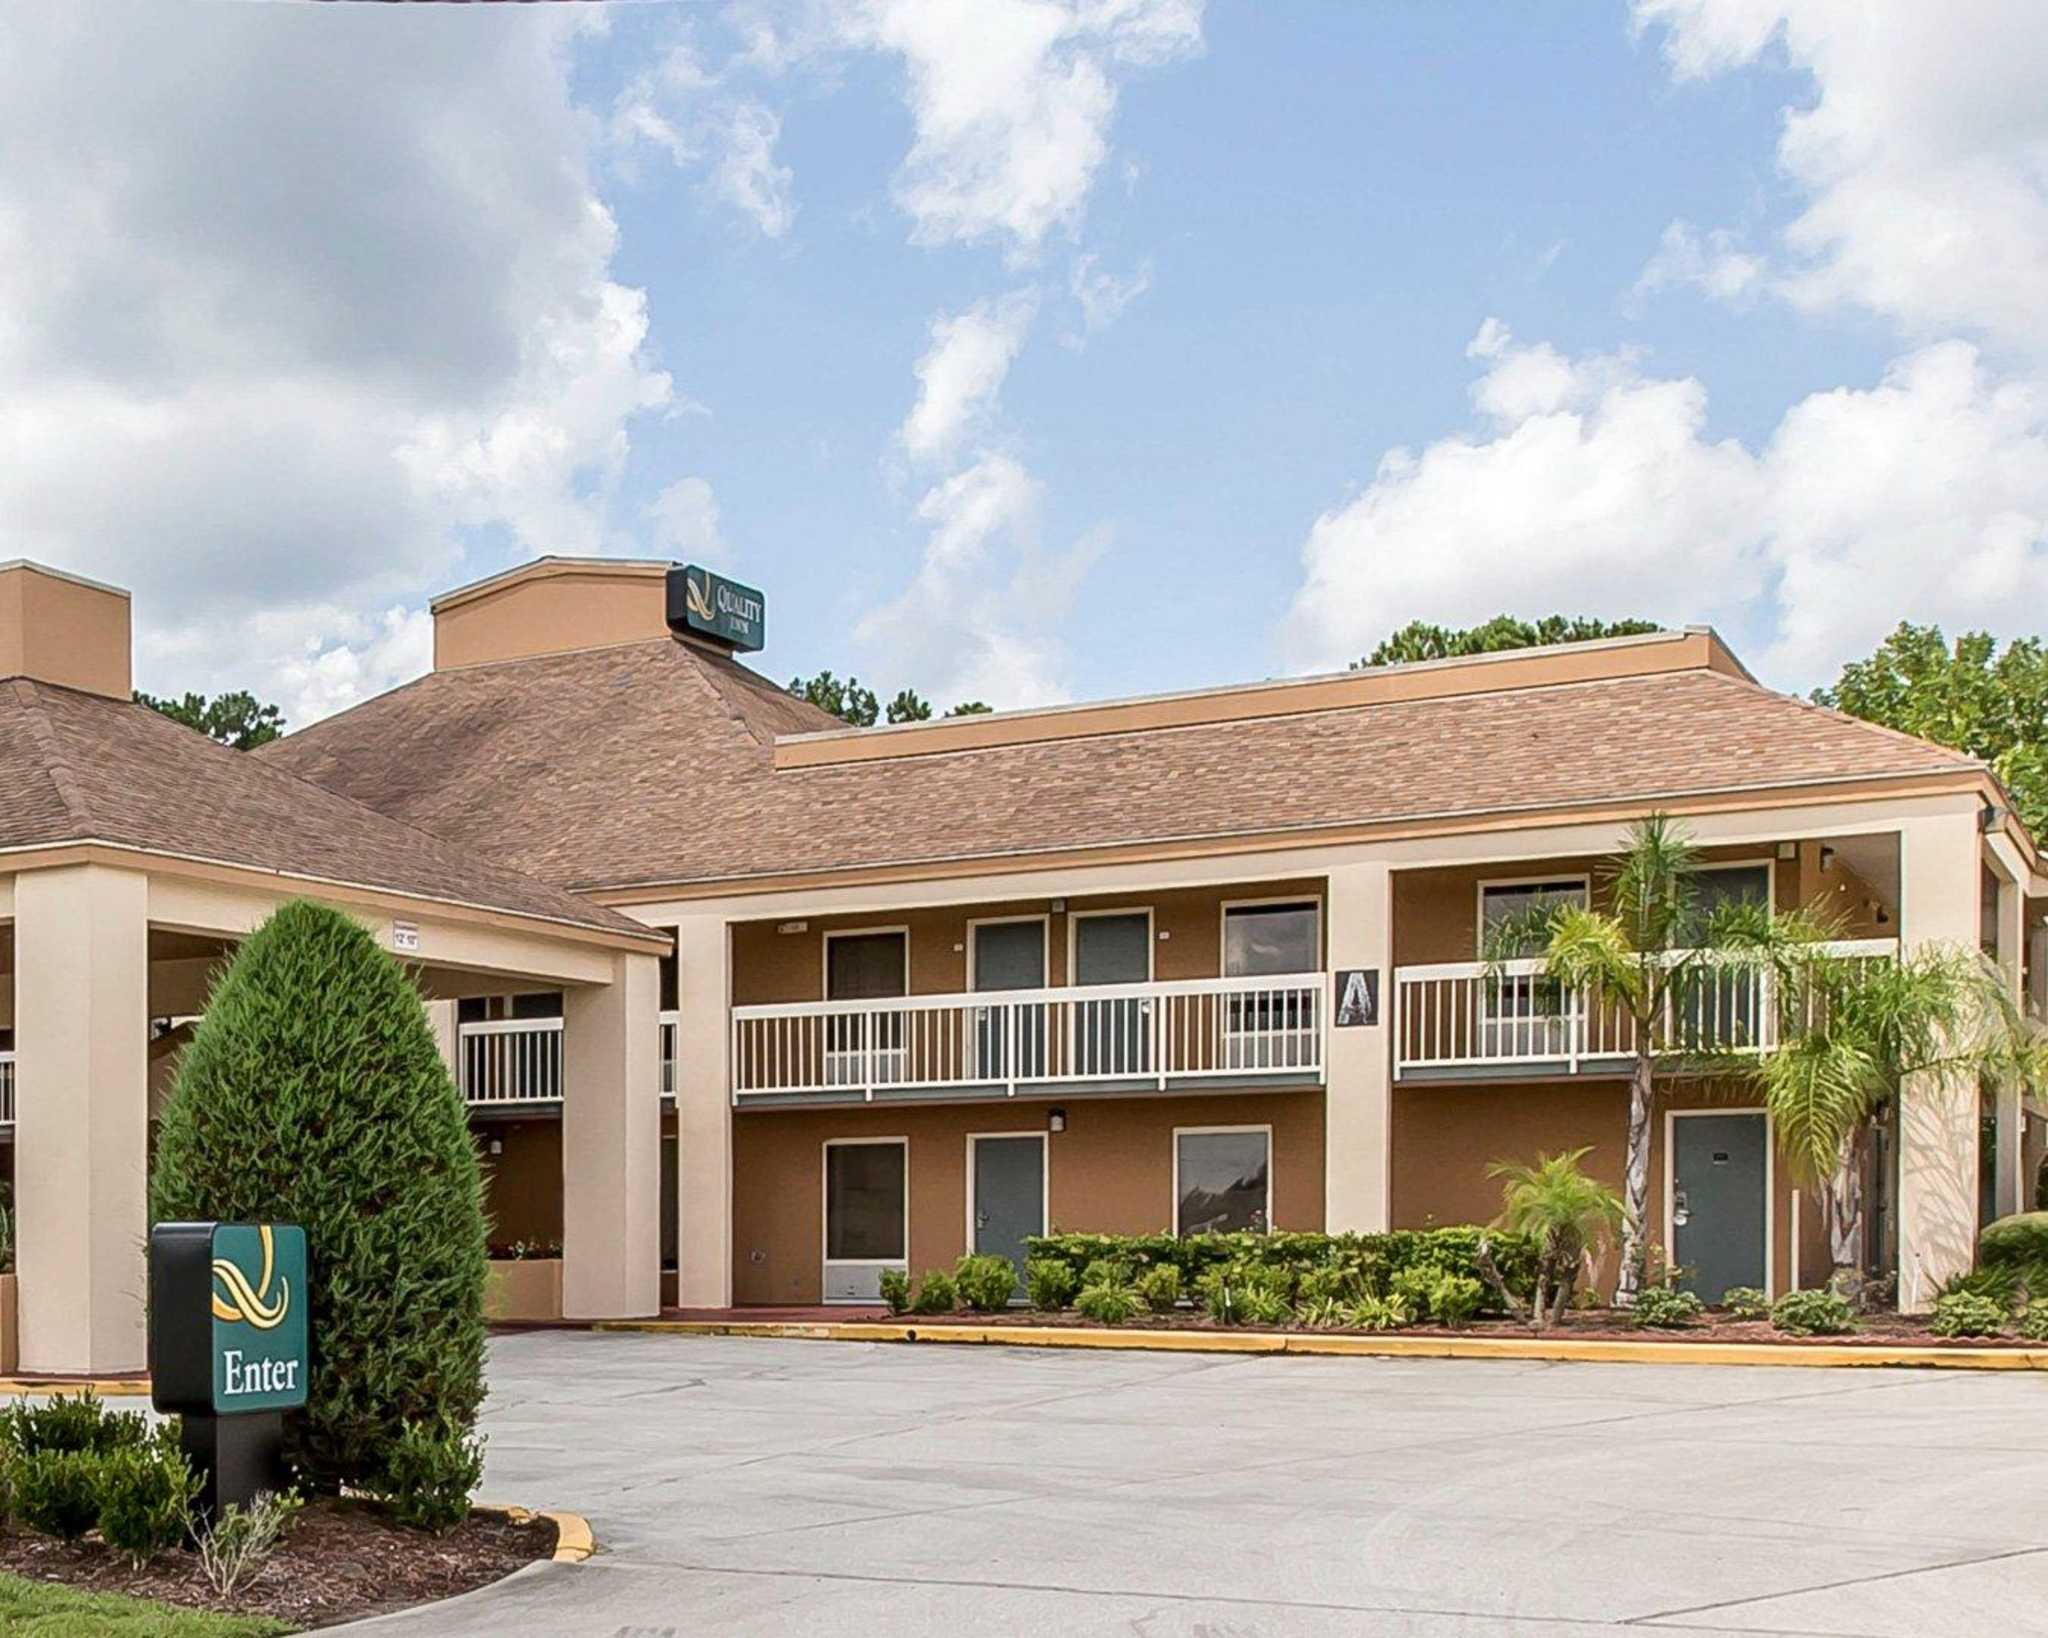 Hotels Near Kingsland Ga